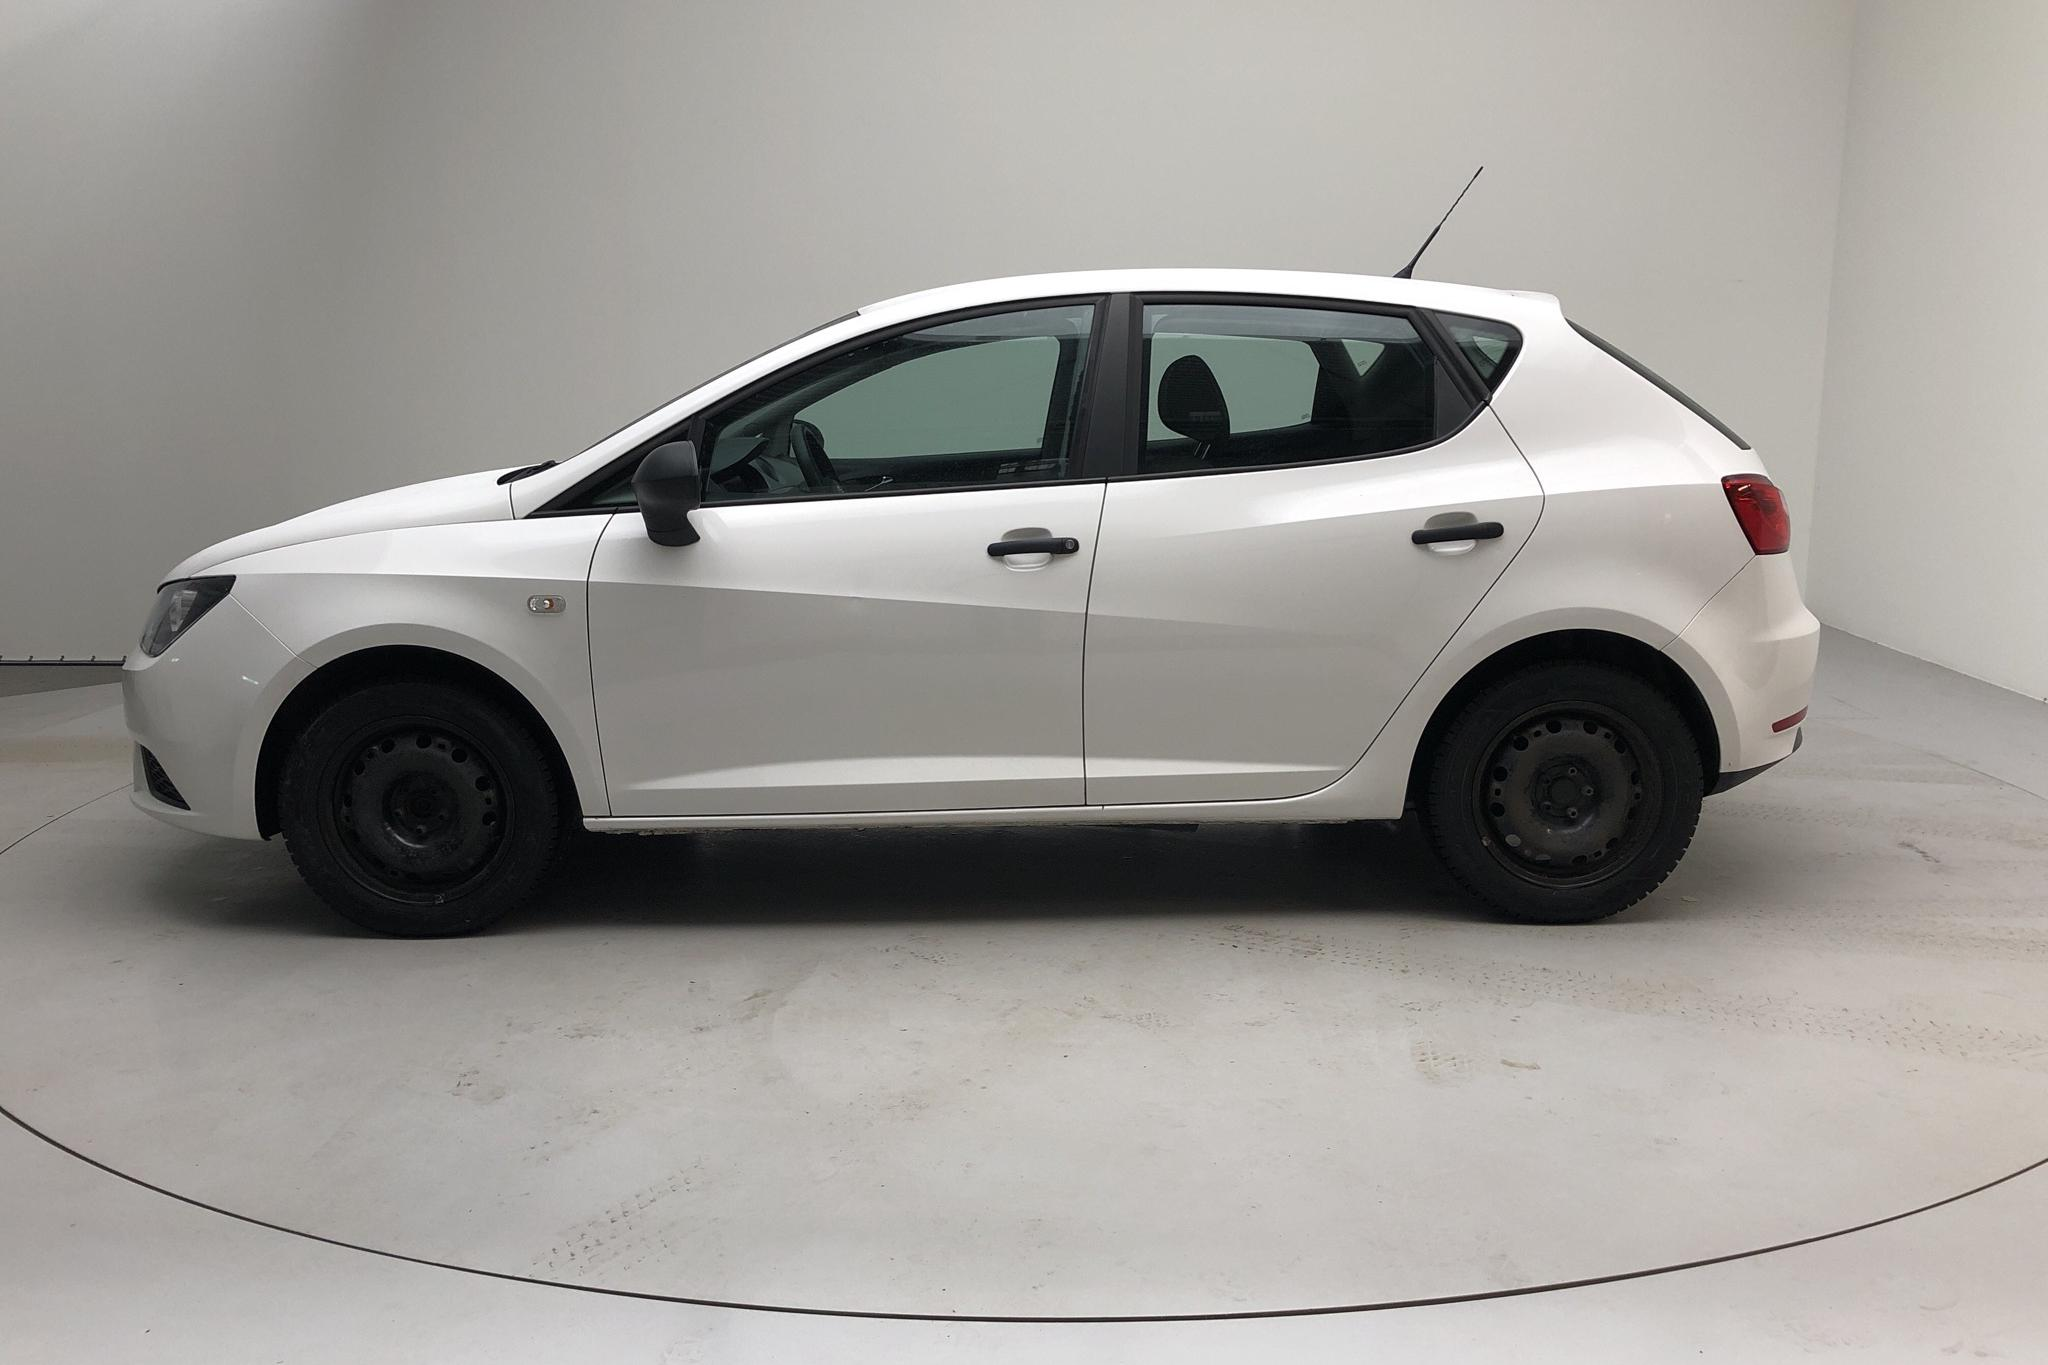 Seat Ibiza 1.4 16V 5dr (85hk) - 82 110 km - Manual - white - 2015